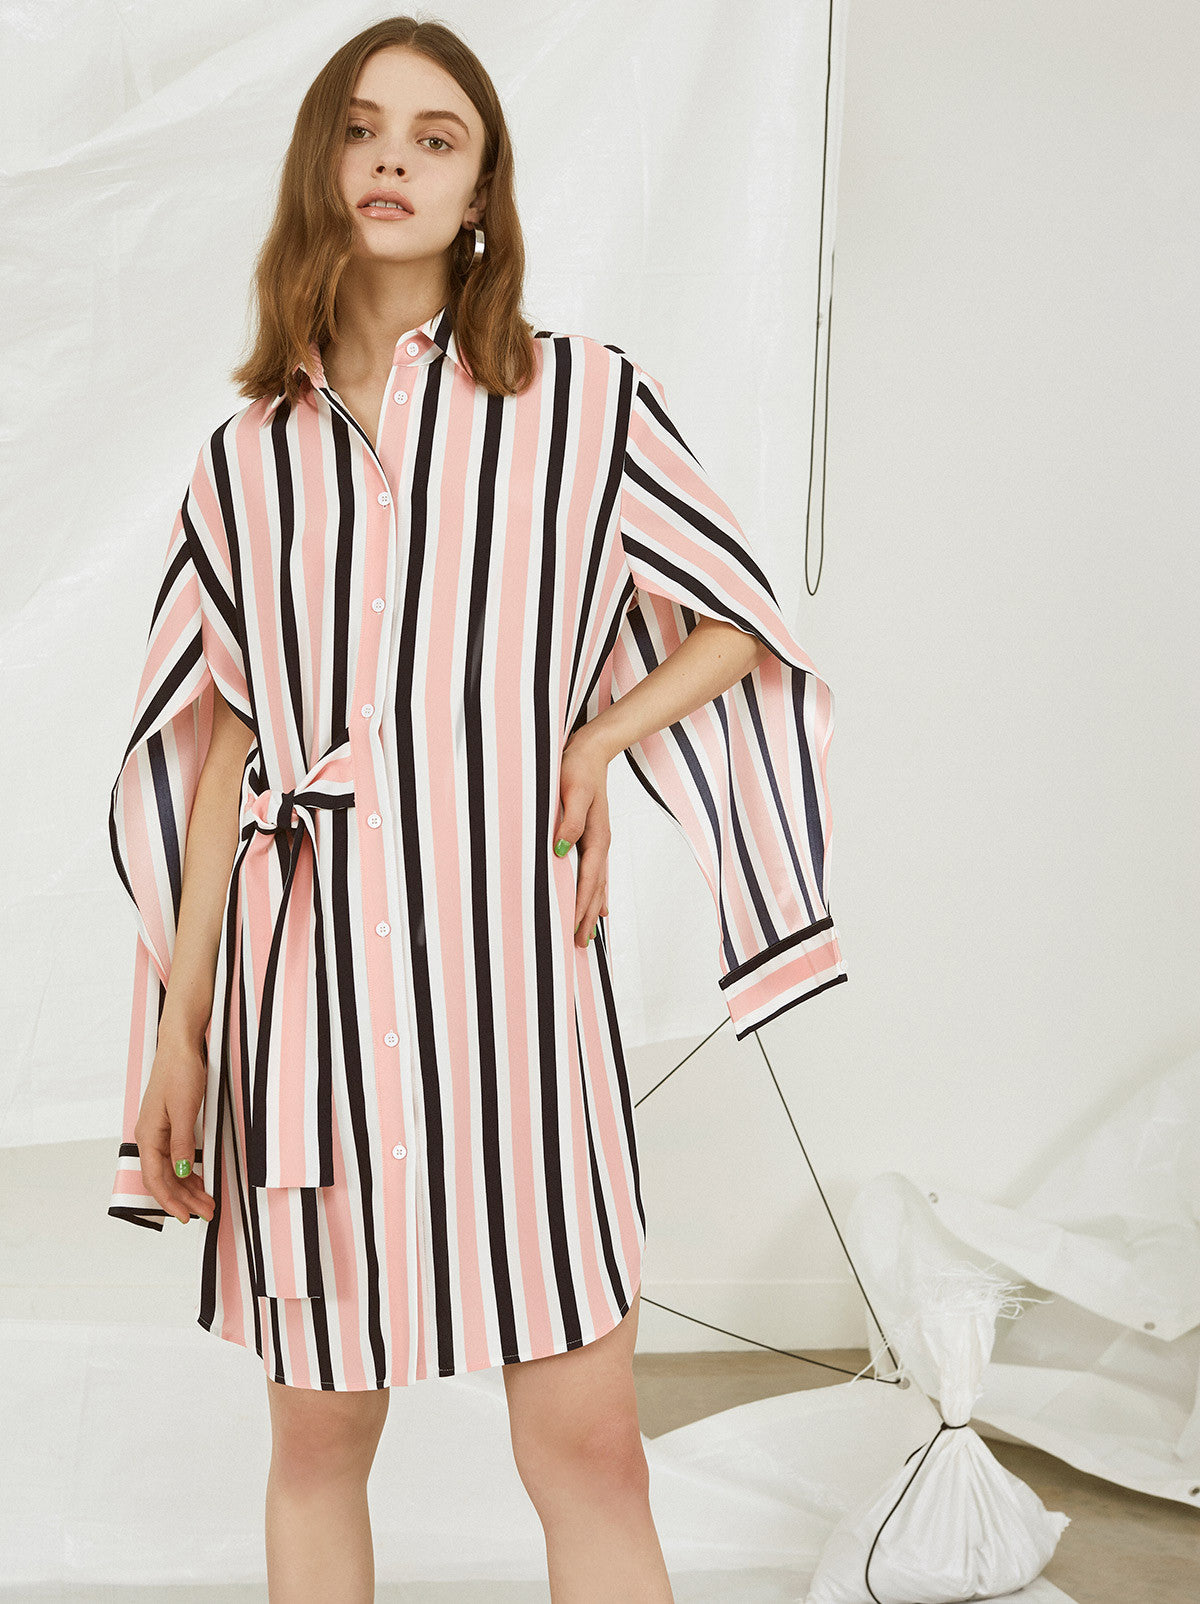 Katy Striped Shirt Sundress by KITRI Studio